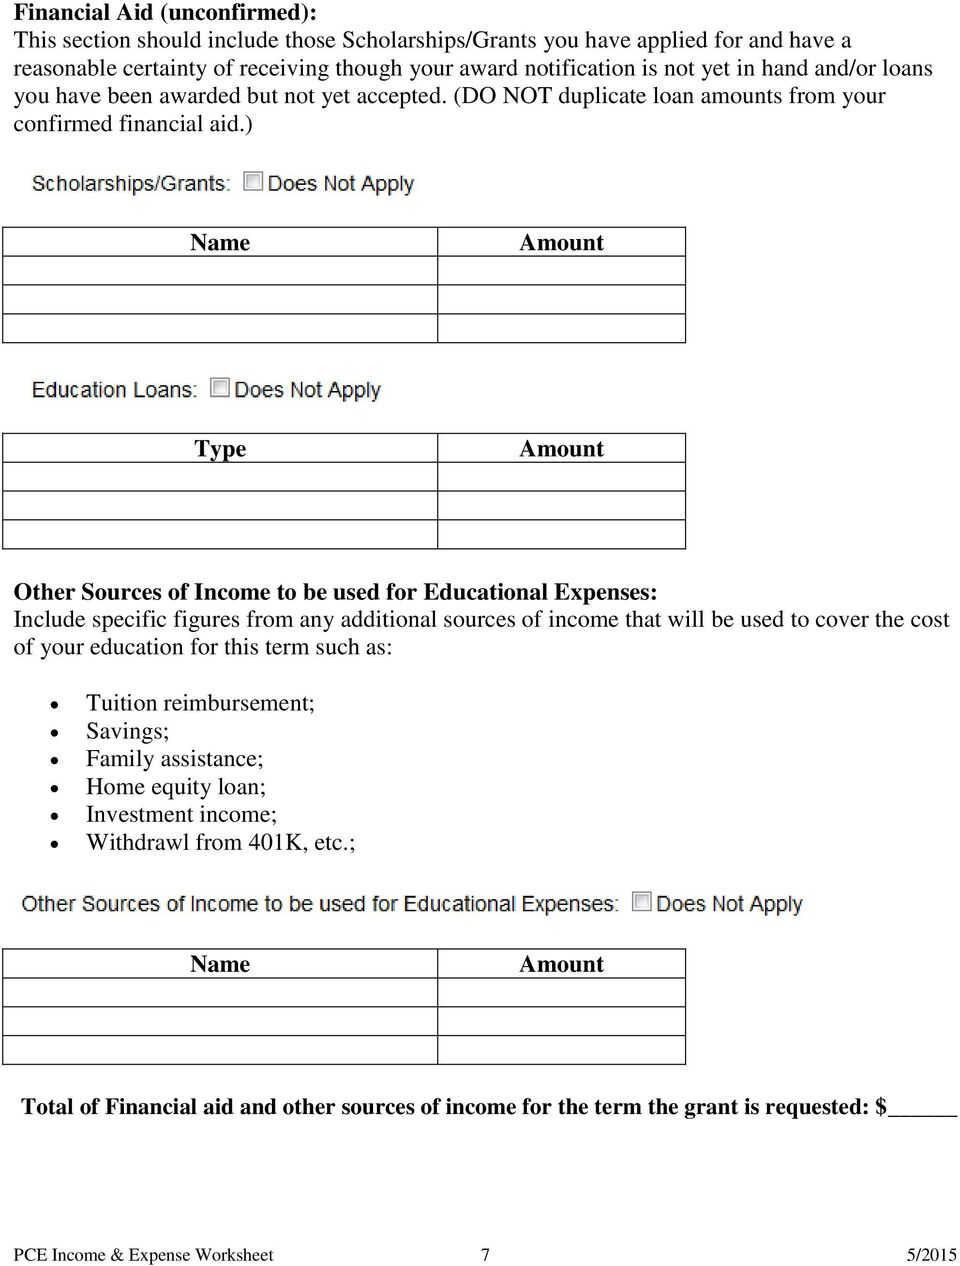 PCE PreApplication Income and Expense Worksheet PDF – Income Worksheet